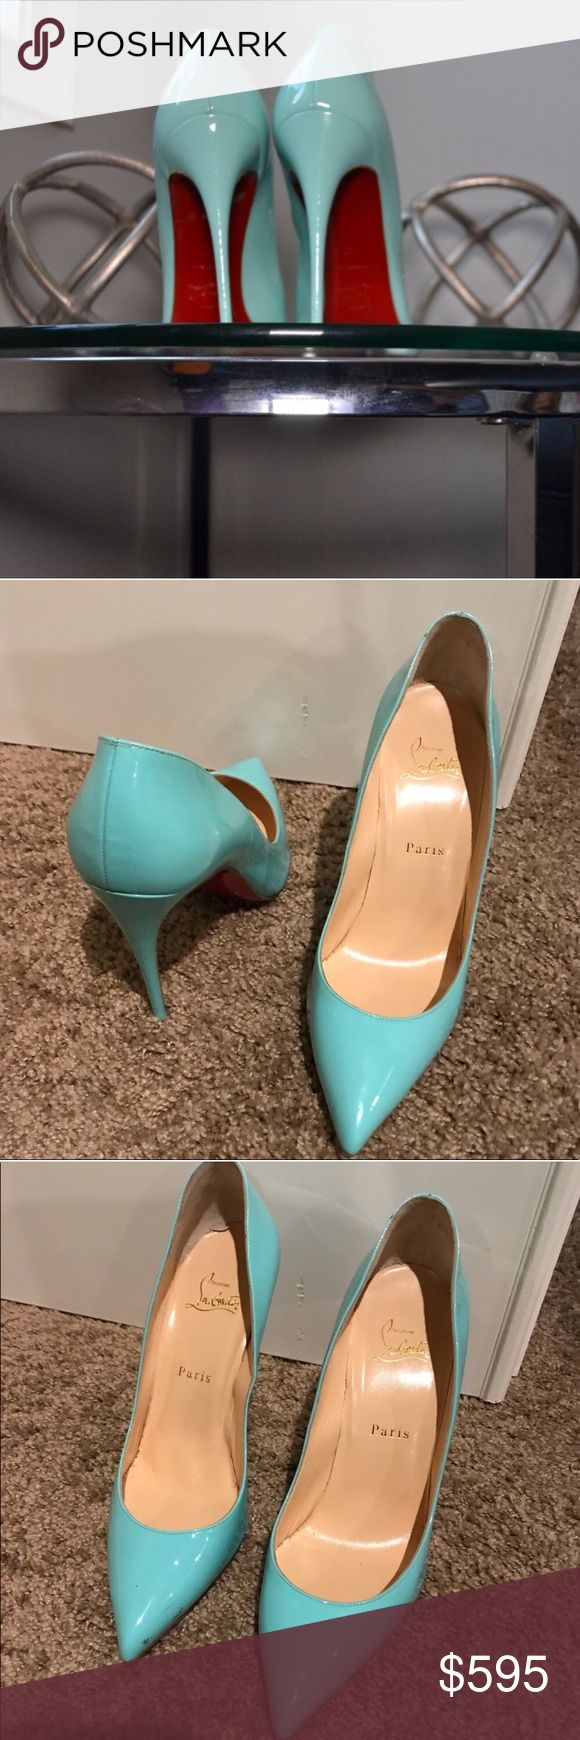 "Heels (Christian Louboutin: So Kate) Condition: Used Color: Light Blue Size: 9.5 Description: Light blue Christian Louboutin ""So Kate"" heels with red bottom; Small ding on heel. Patent is slightly scuffed. Shoes Heels"